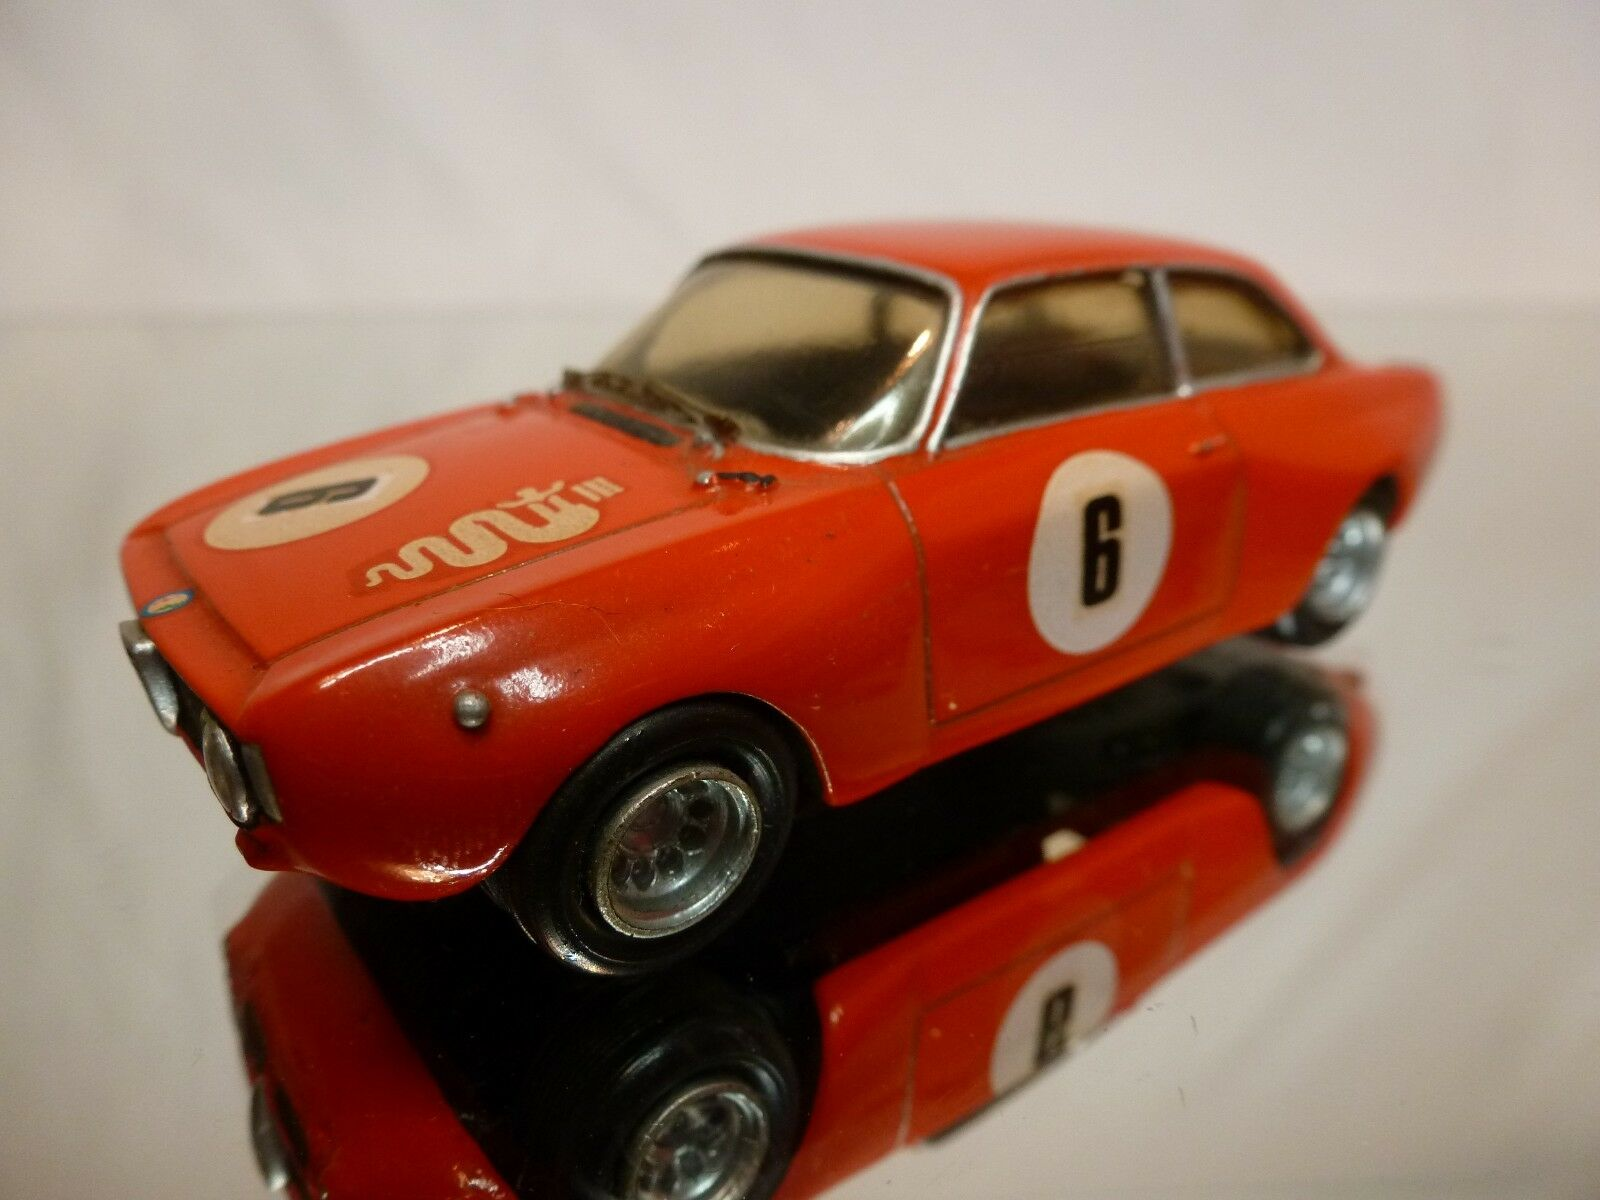 PROVENCE MOULAGE KIT built ALFA ROMEO GTA - rouge 1 43 - NICE CONDITION